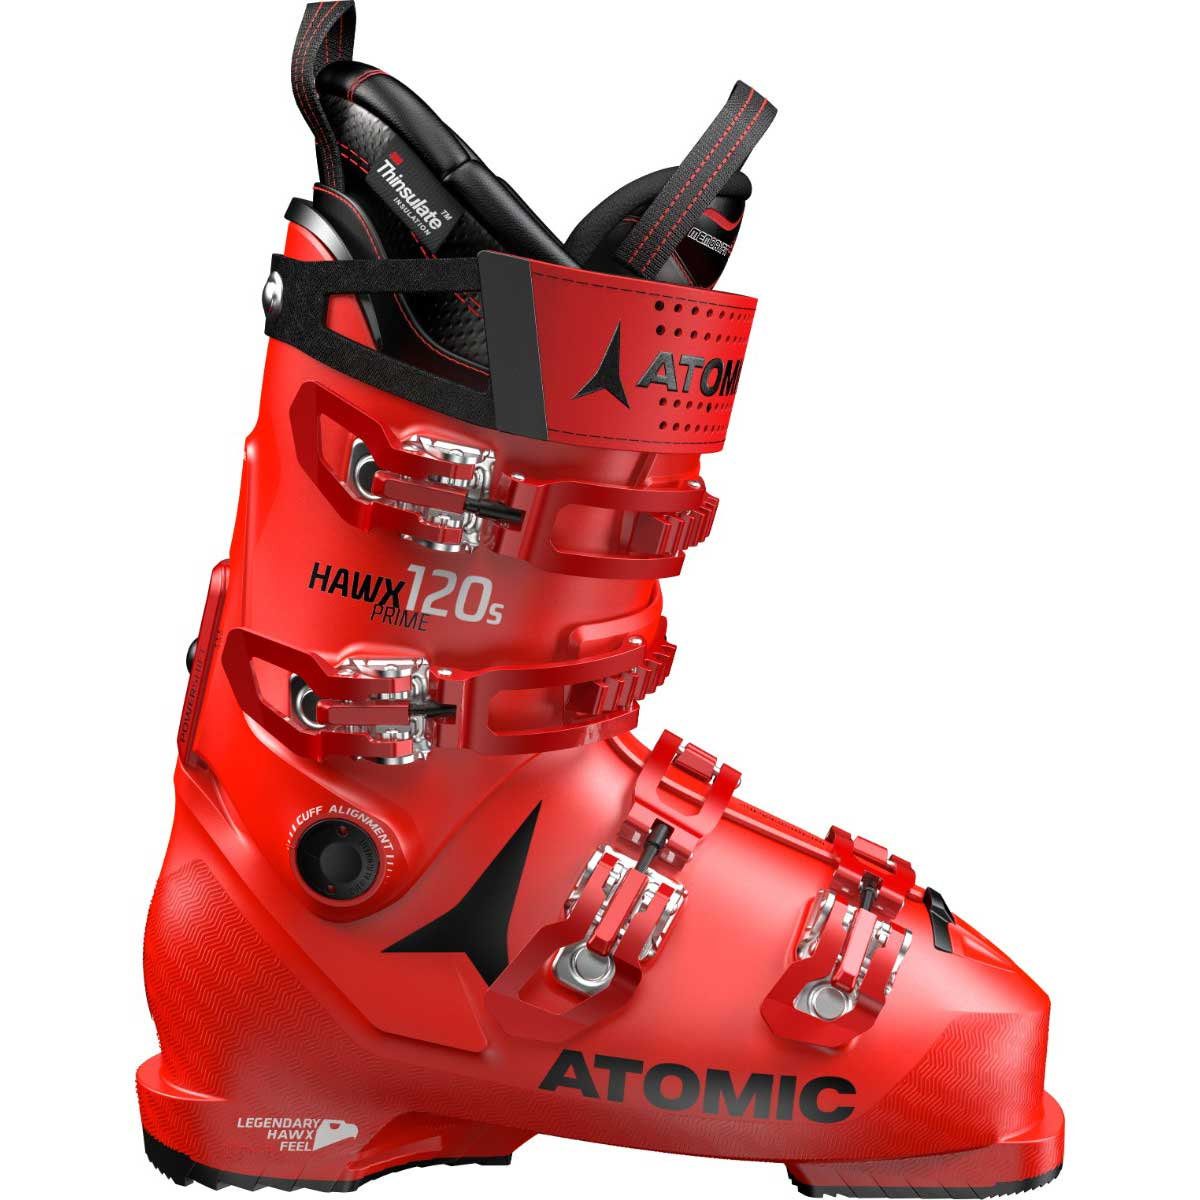 Atomic men's HAWX Prime 120 S ski boot in red and black